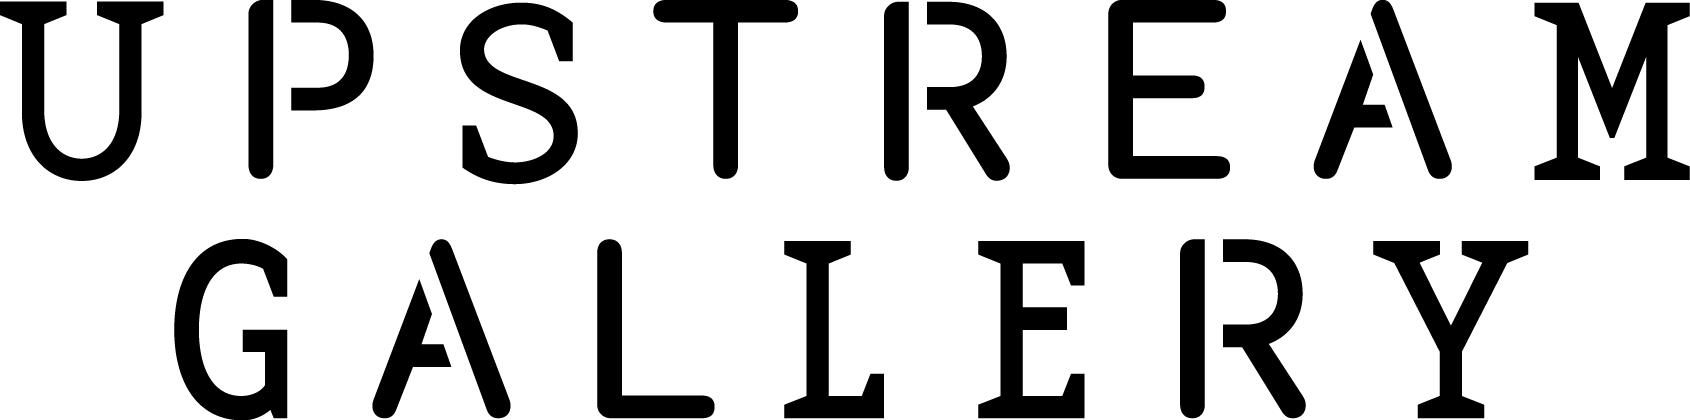 Upstream Gallery Amsterdam logo